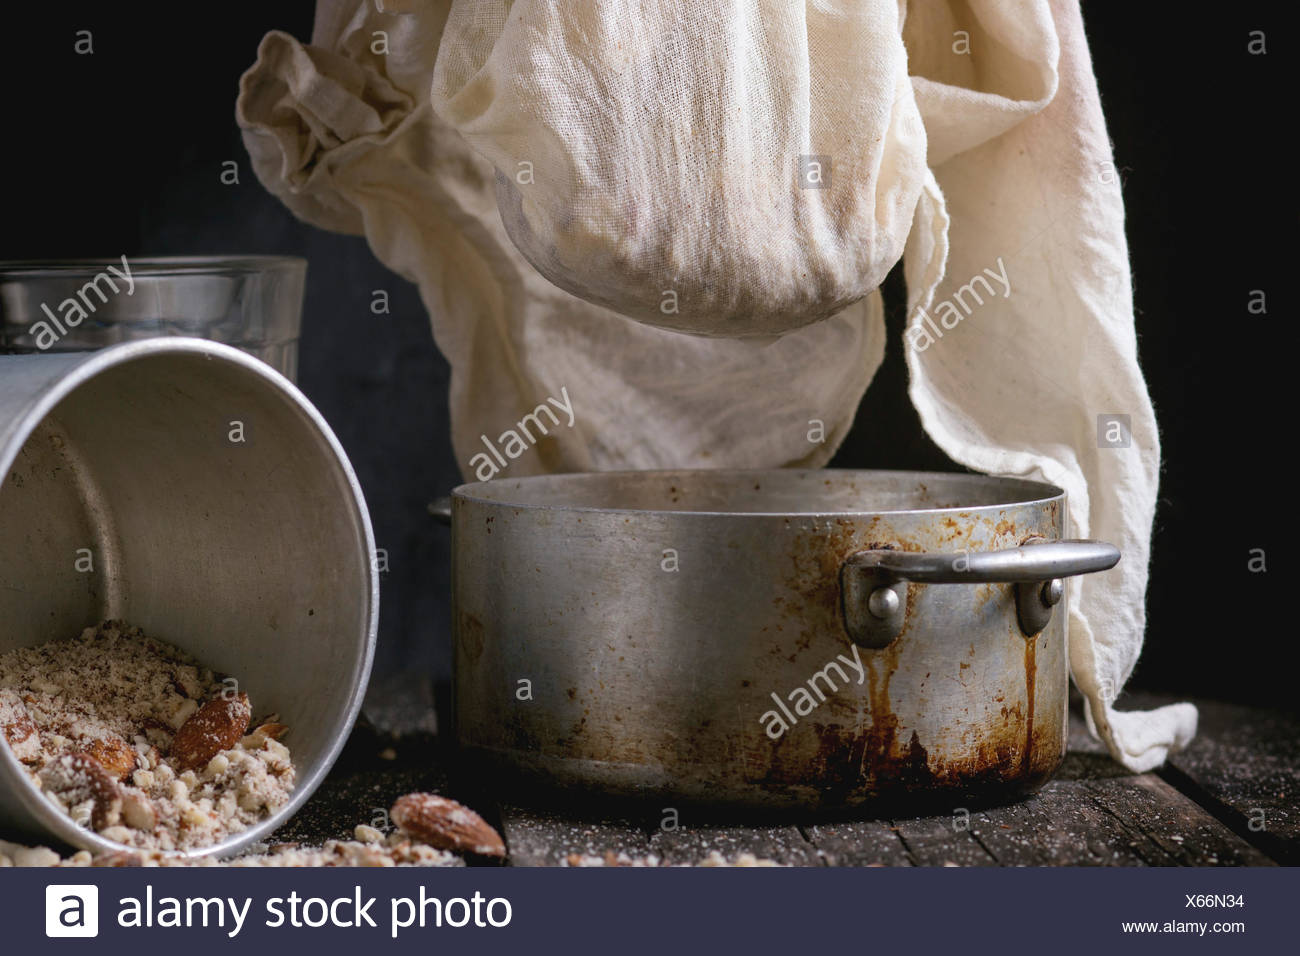 Process of making non-dairy almond milk - extraction of grain almond via white textile at vintage pan over old wooden table. Dar - Stock Image